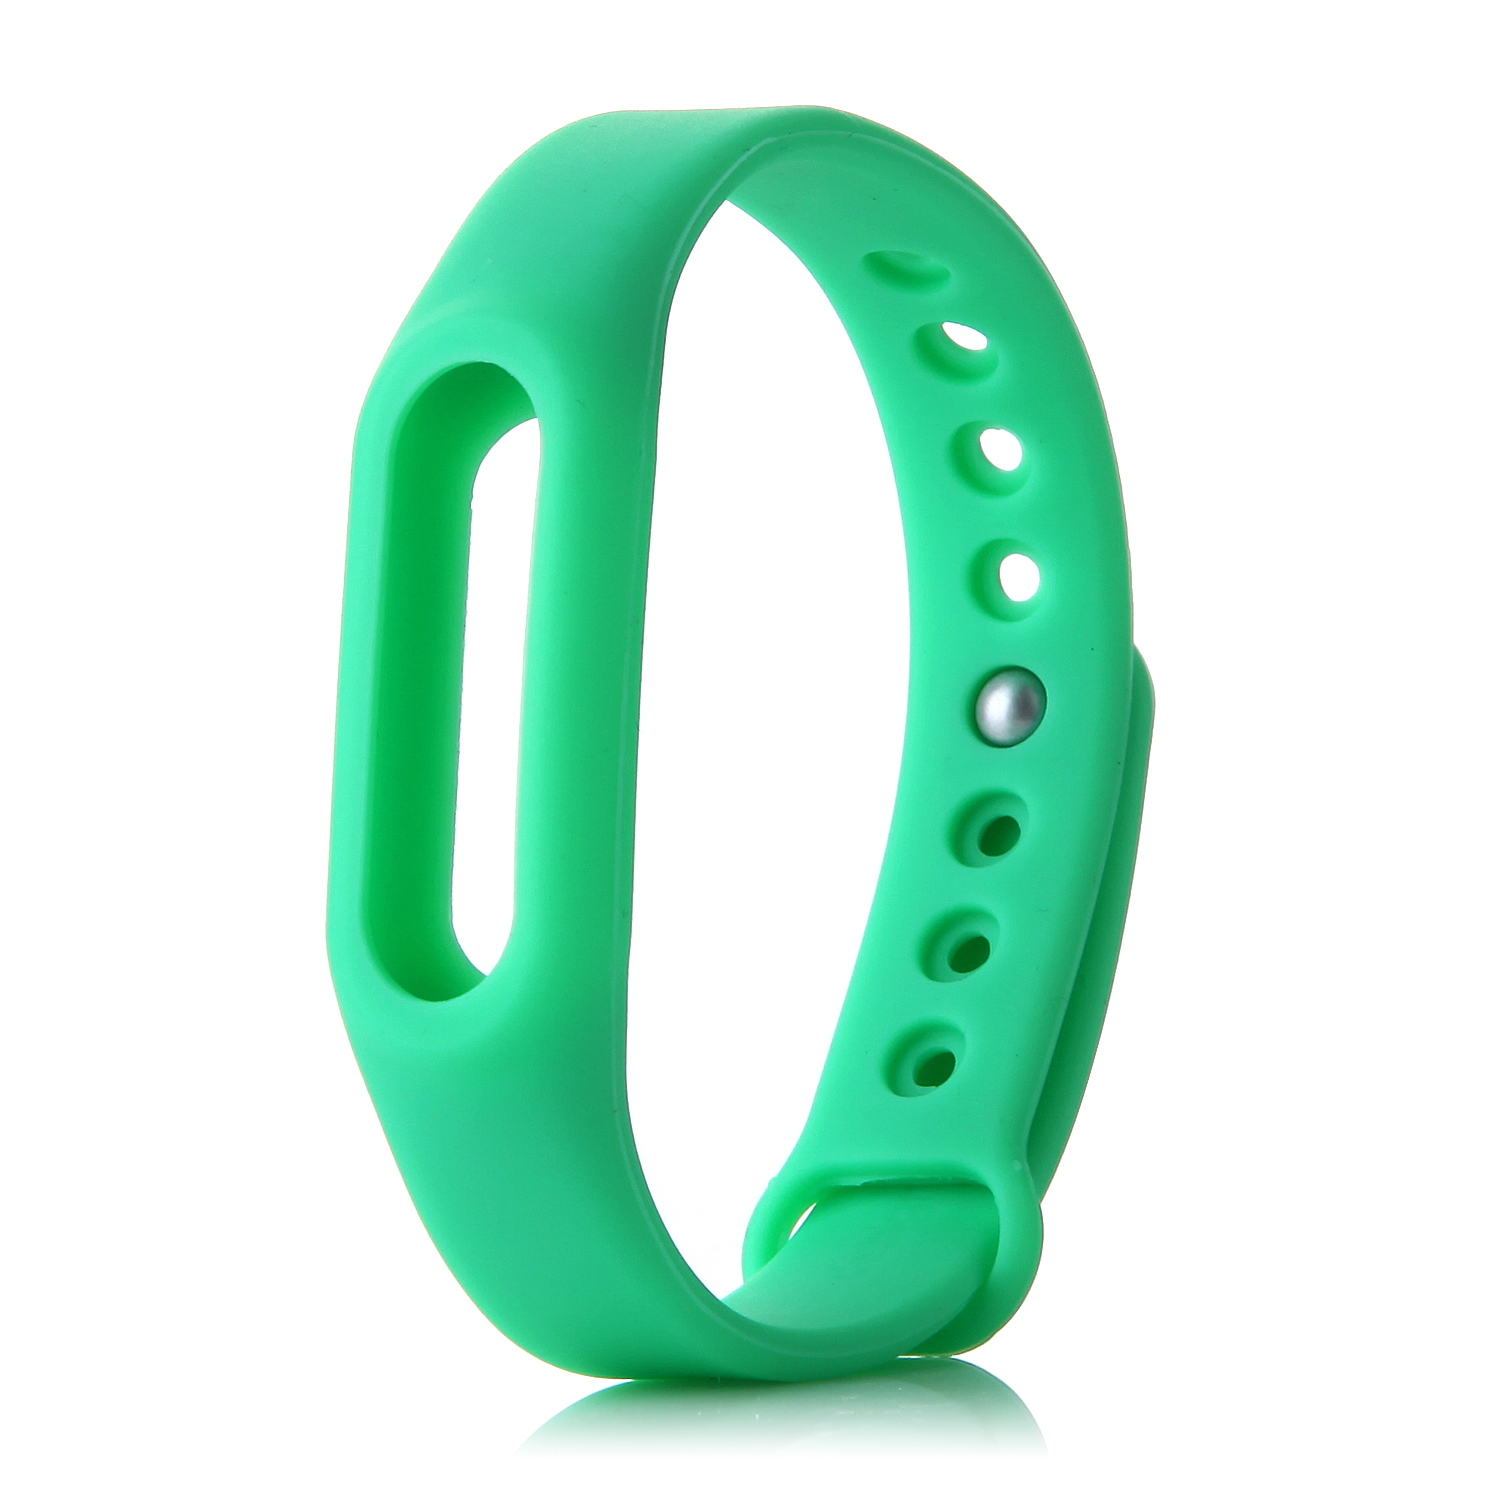 Replacement Wrist Strap Wearable Wrist Band for XIAOMI MI Band Bracelet Dark Green